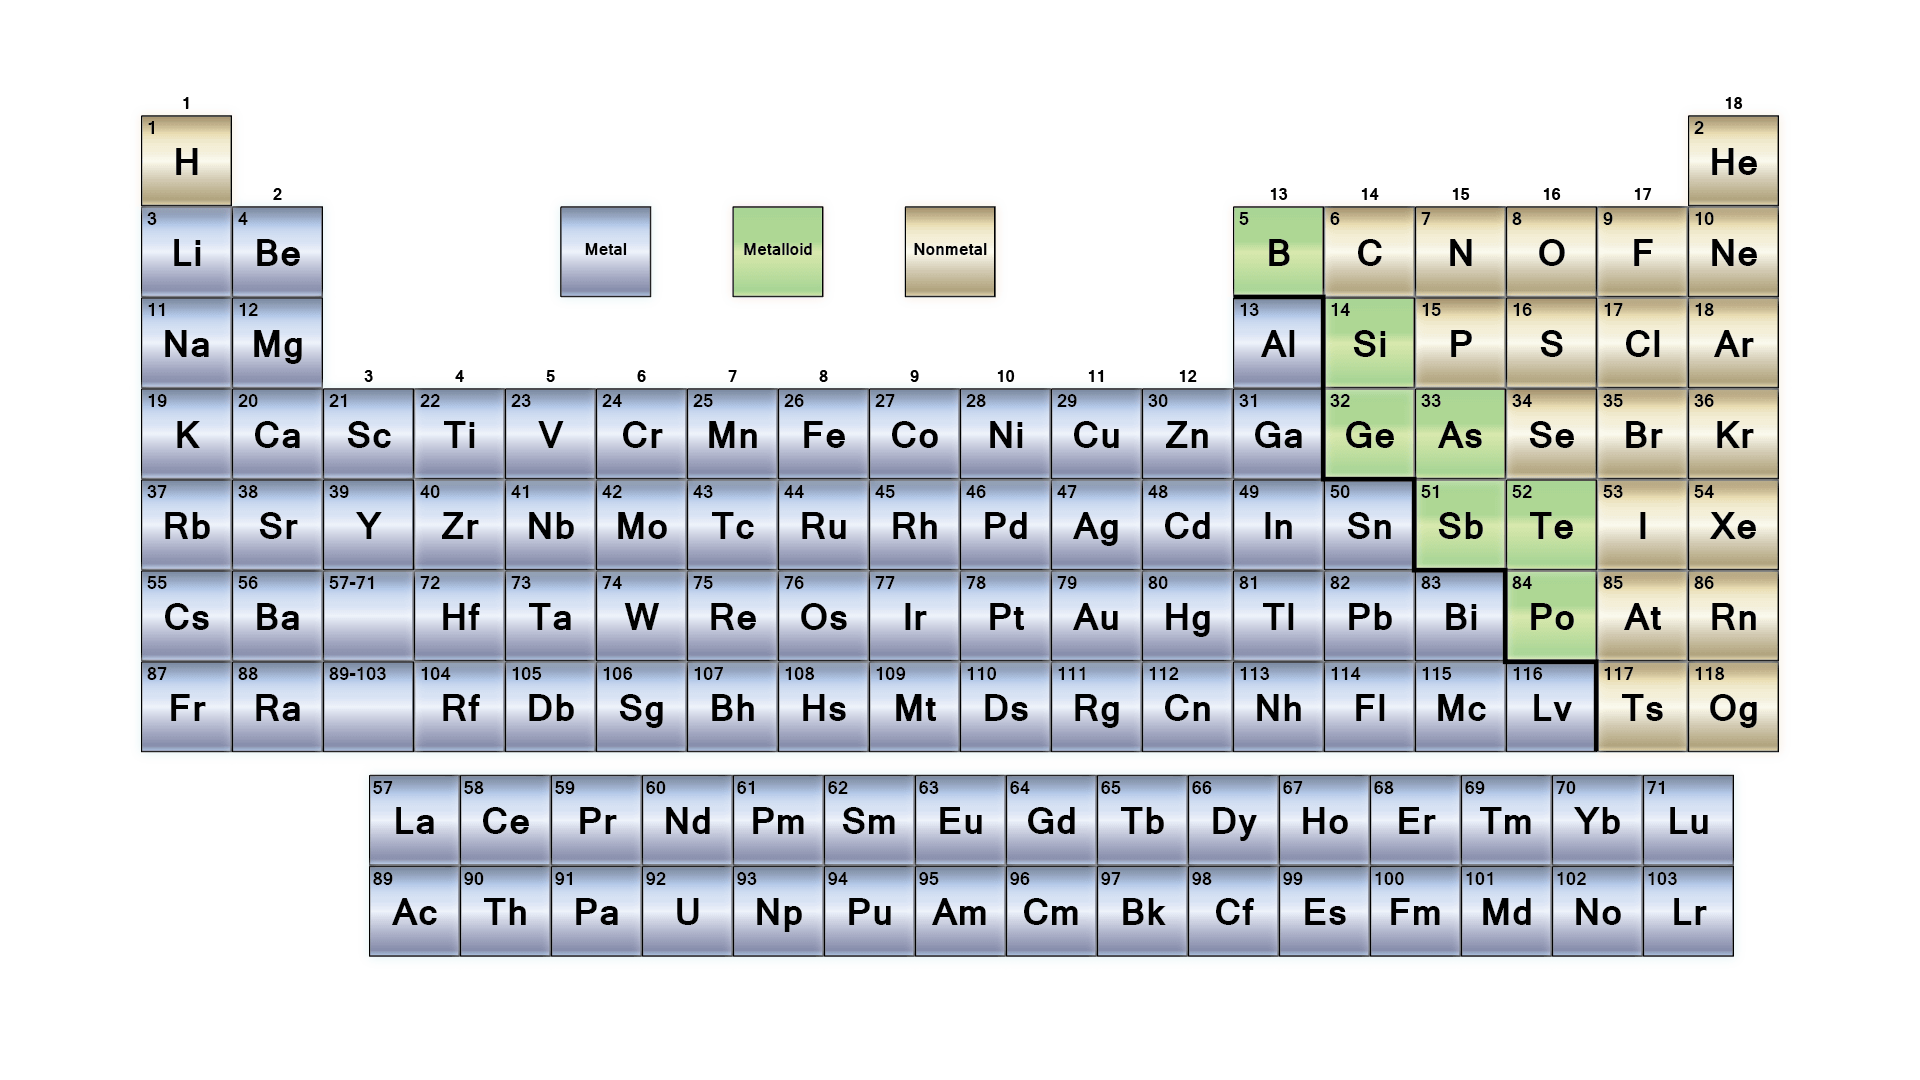 Metals metalloids and nonmetals element classification groups periodic table metals 2017 gamestrikefo Choice Image